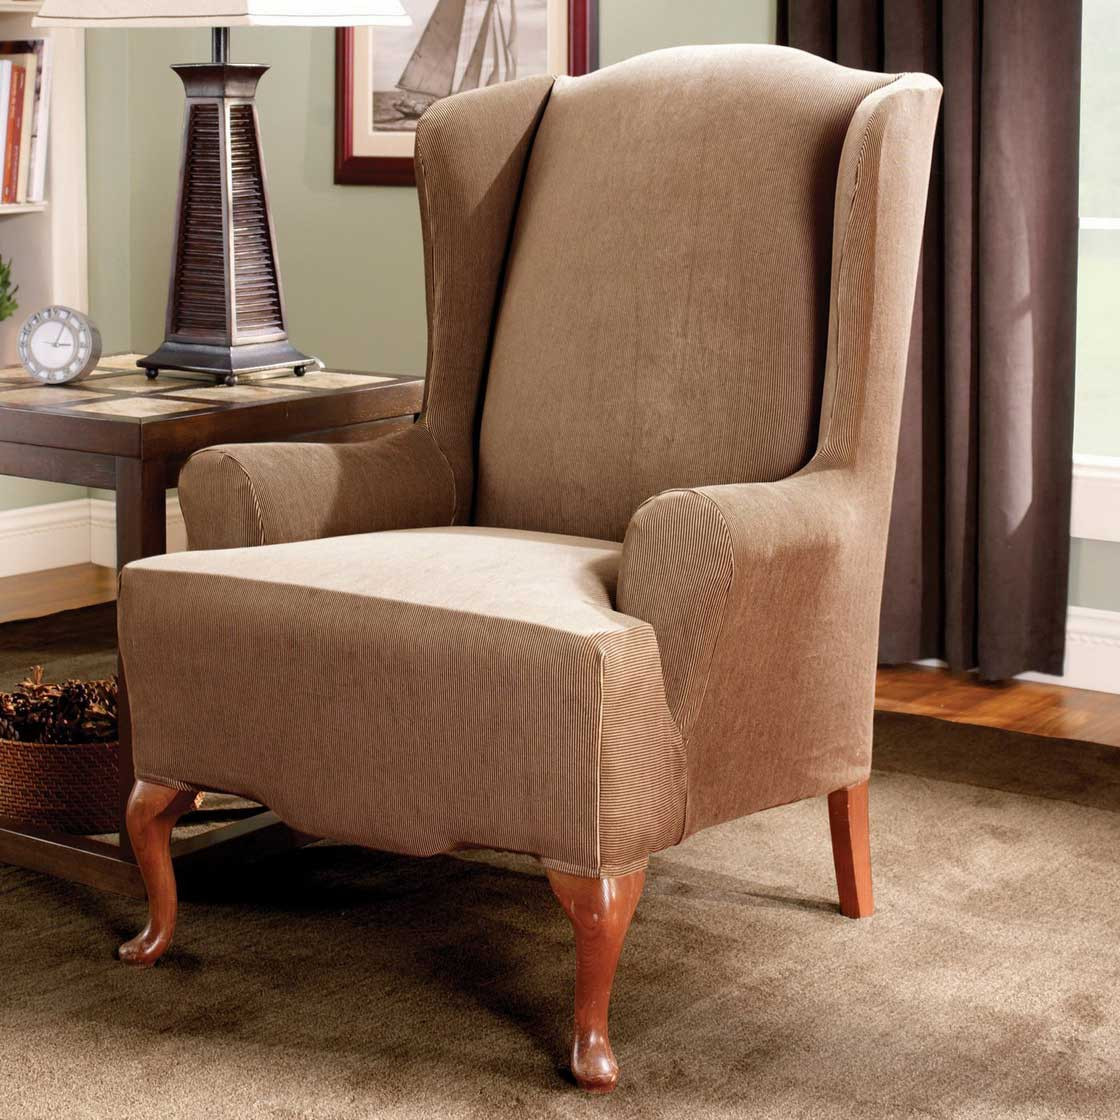 Best ideas about Living Room Chair Covers . Save or Pin Living Room Chairs Covers Now.